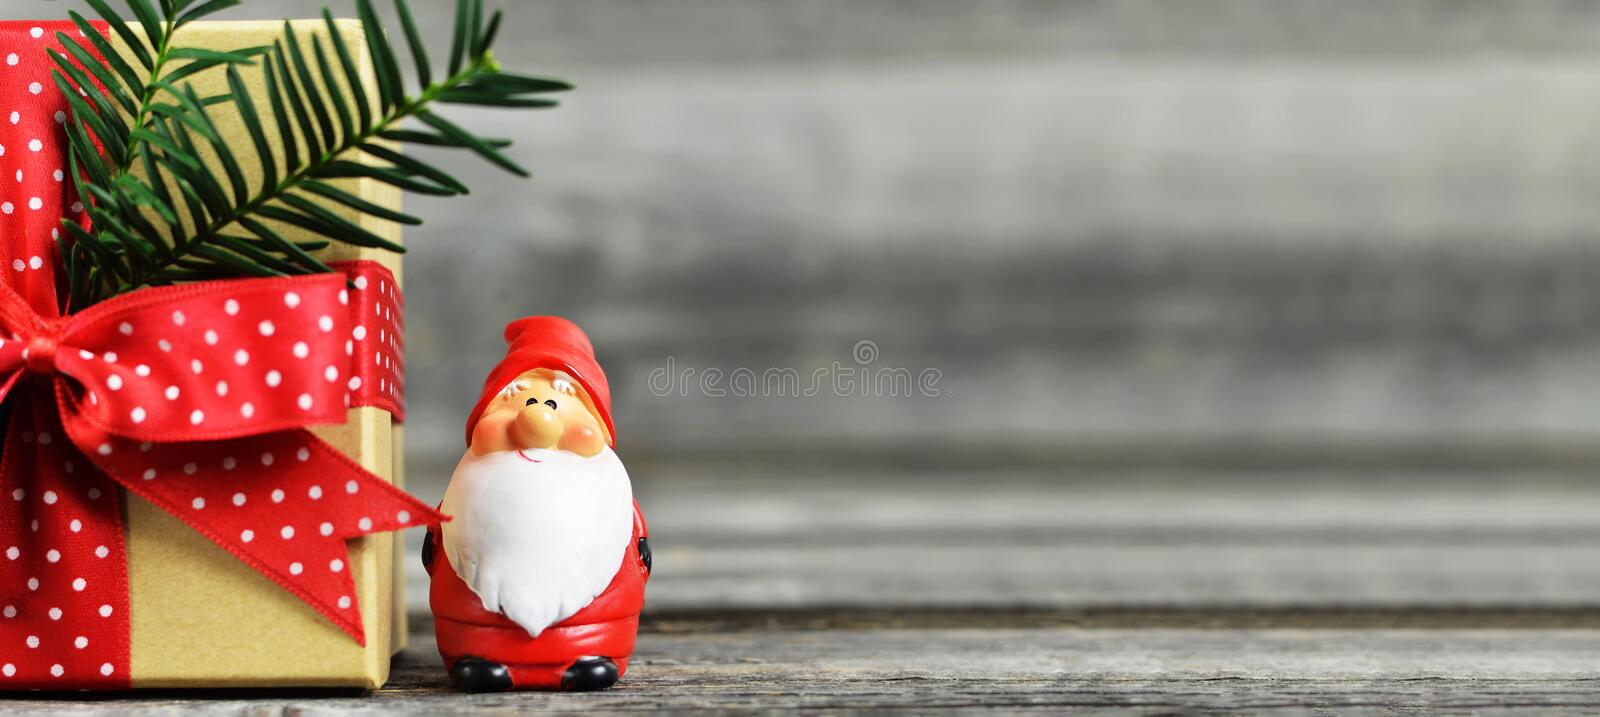 Christmas background with copy space. Santa Claus figurine and Christmas gift on wooden background. Christmas background with copy space.Cute Santa Claus royalty free stock photography